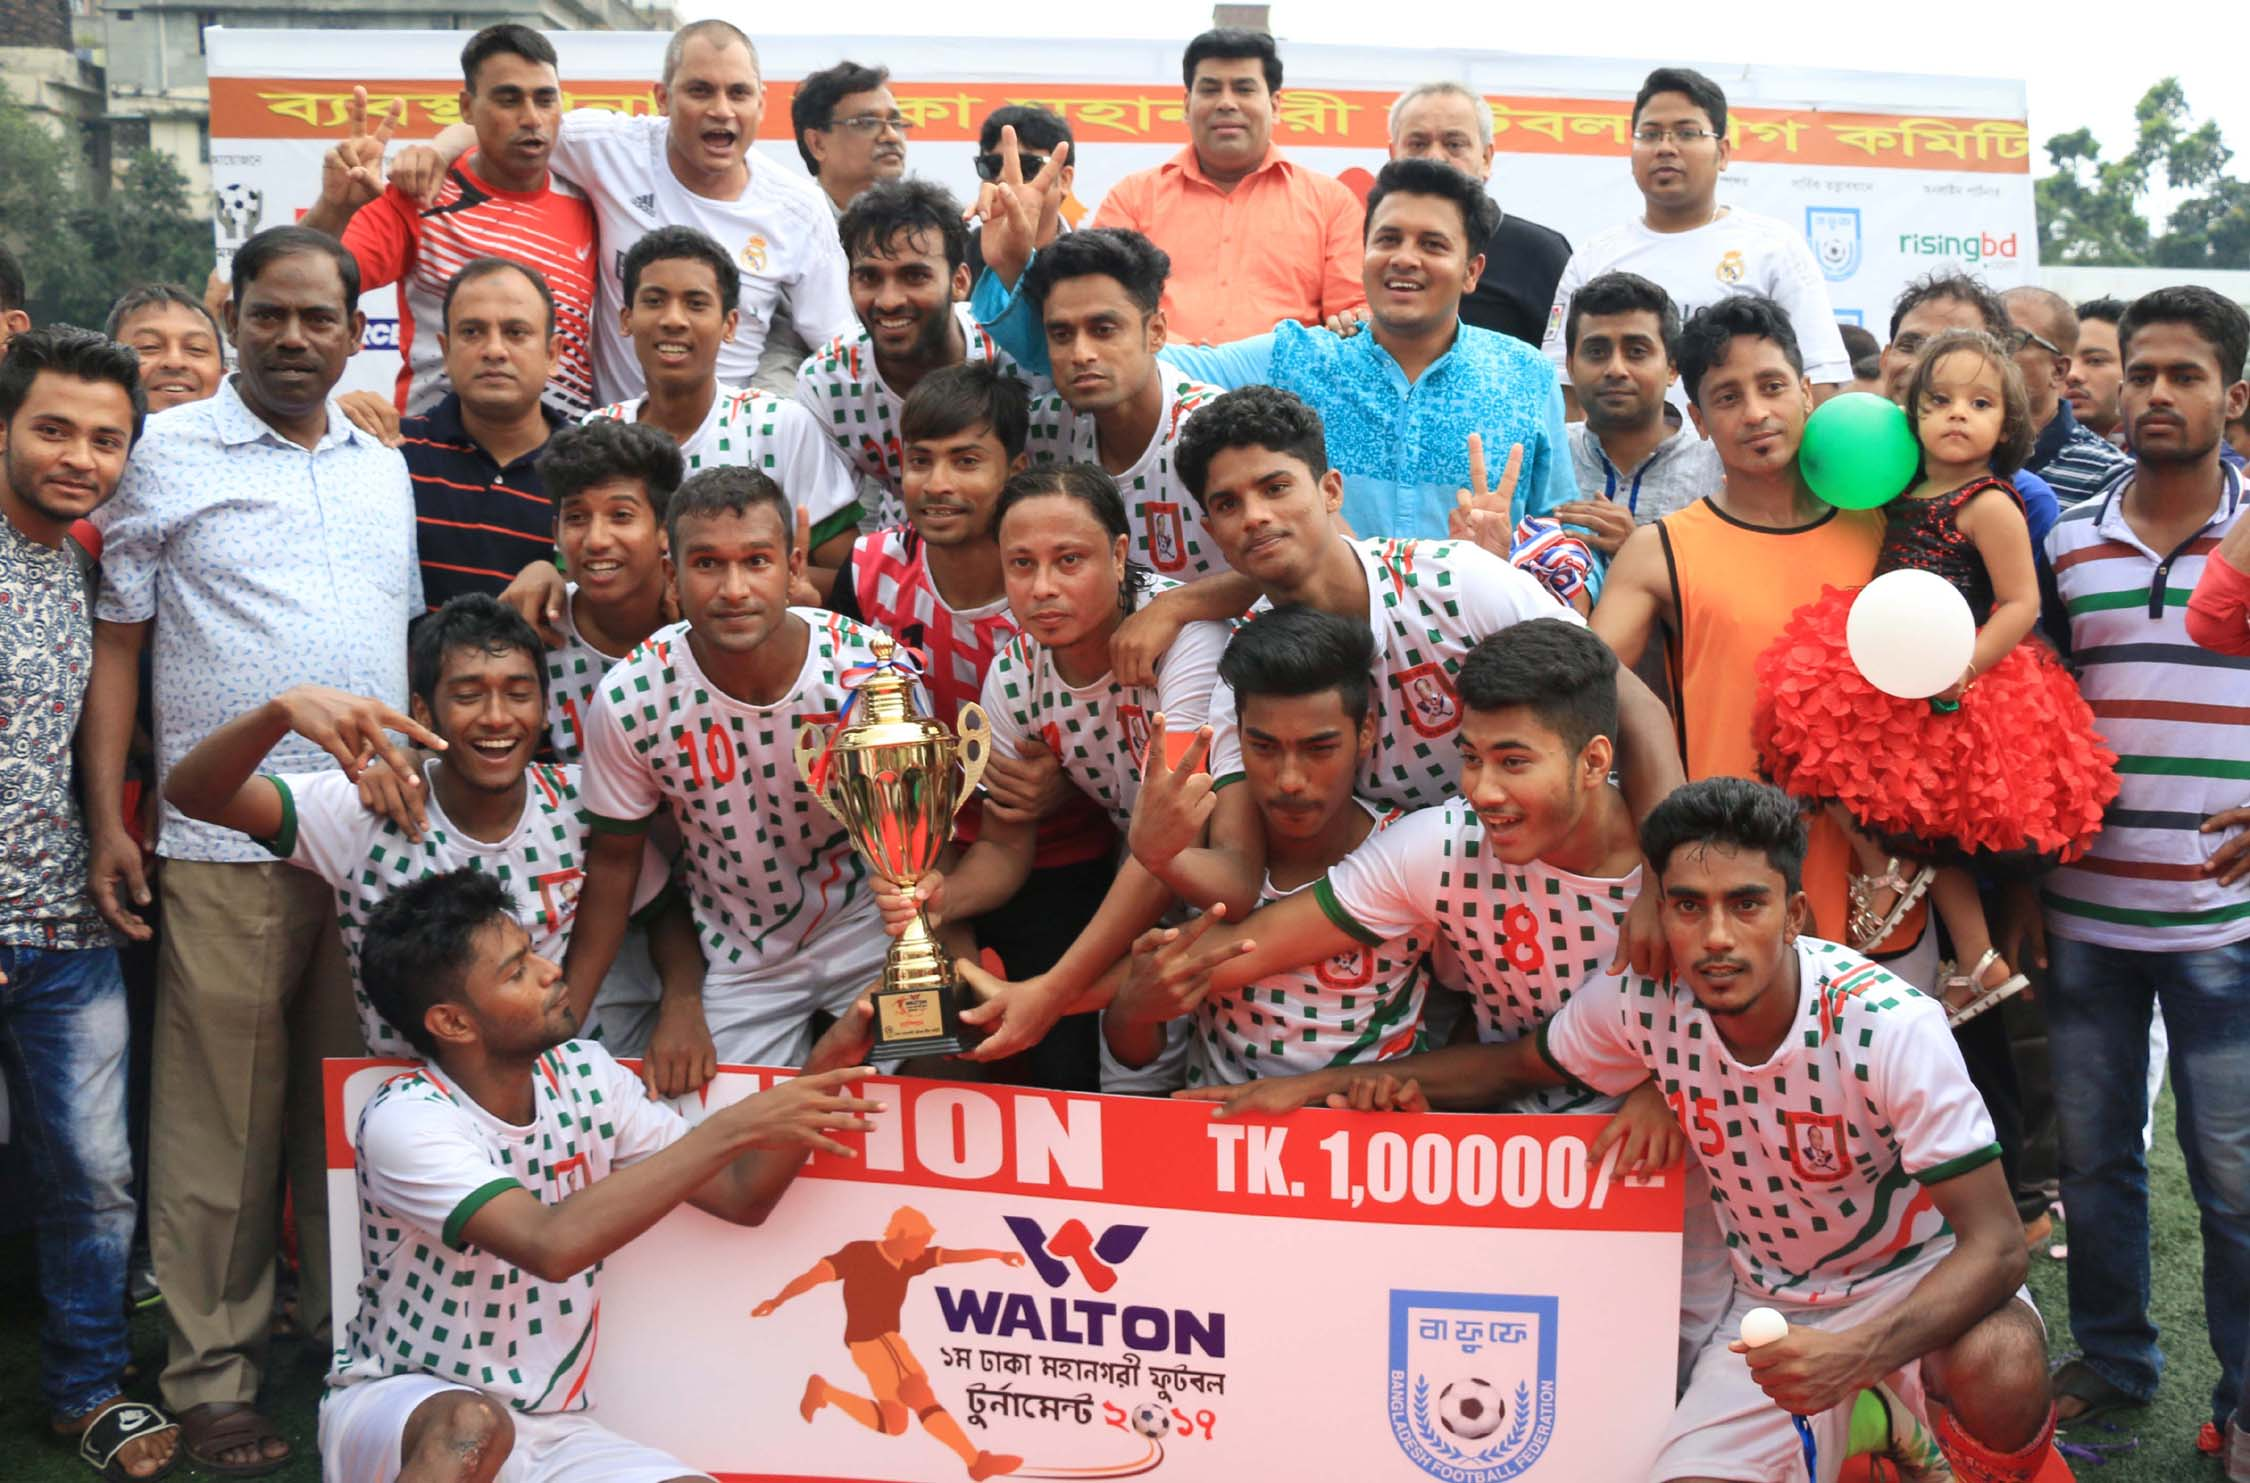 Dr Wazed Miah KC clinch title